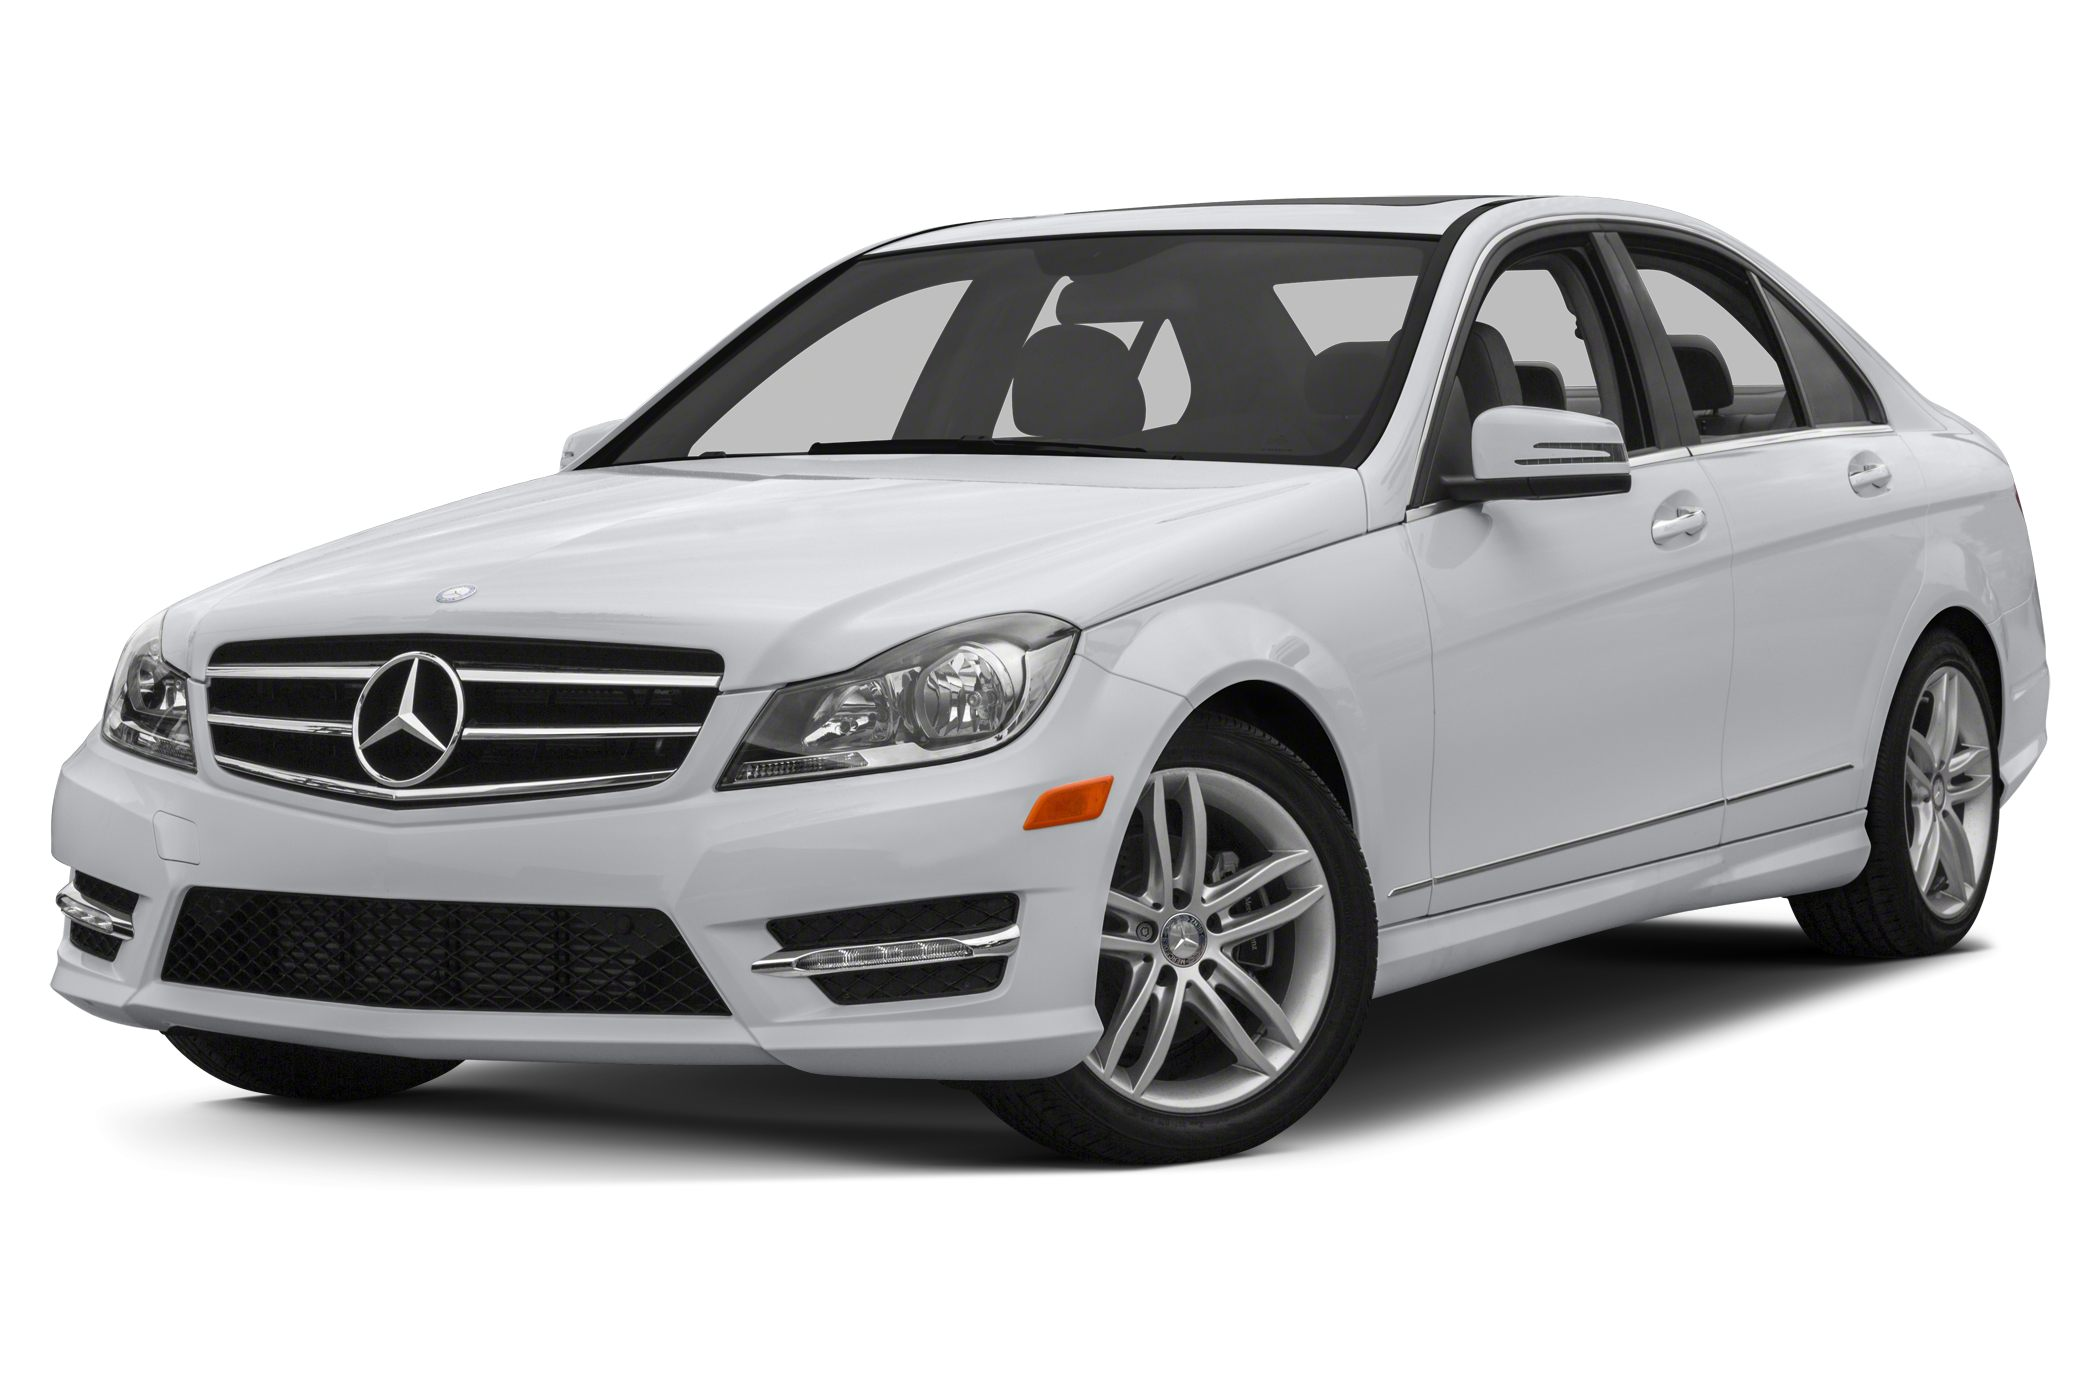 2013 MERCEDES C-Class C250 Sport Vehicle Detailed Recent Oil Change and Passed Dealer Inspection